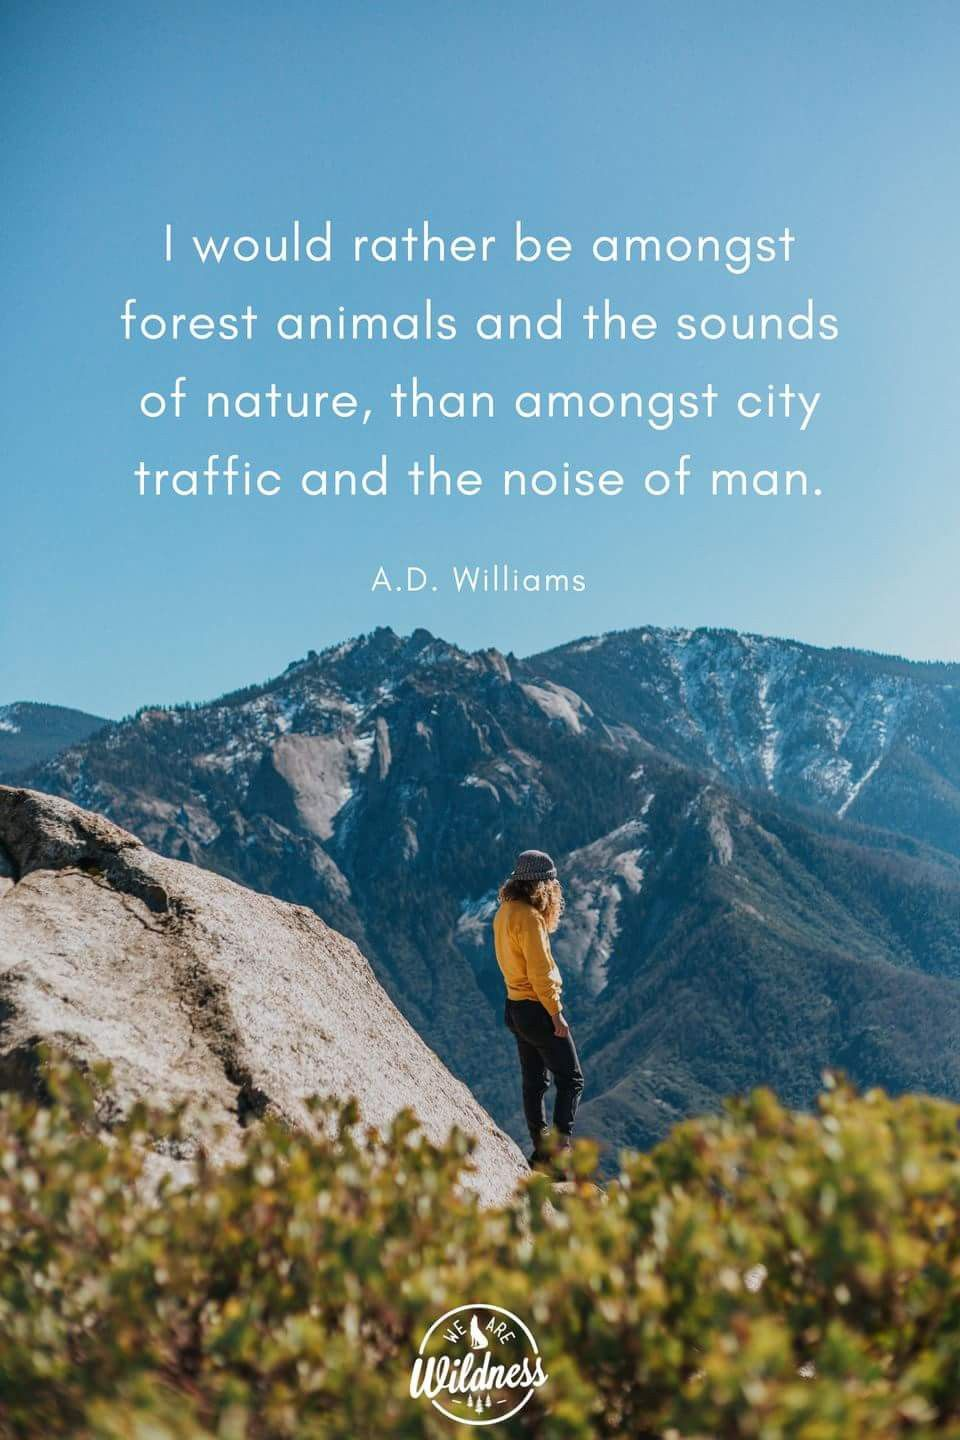 Pin by Aly Hess on Adventure Quotes | Forest animals, True ...